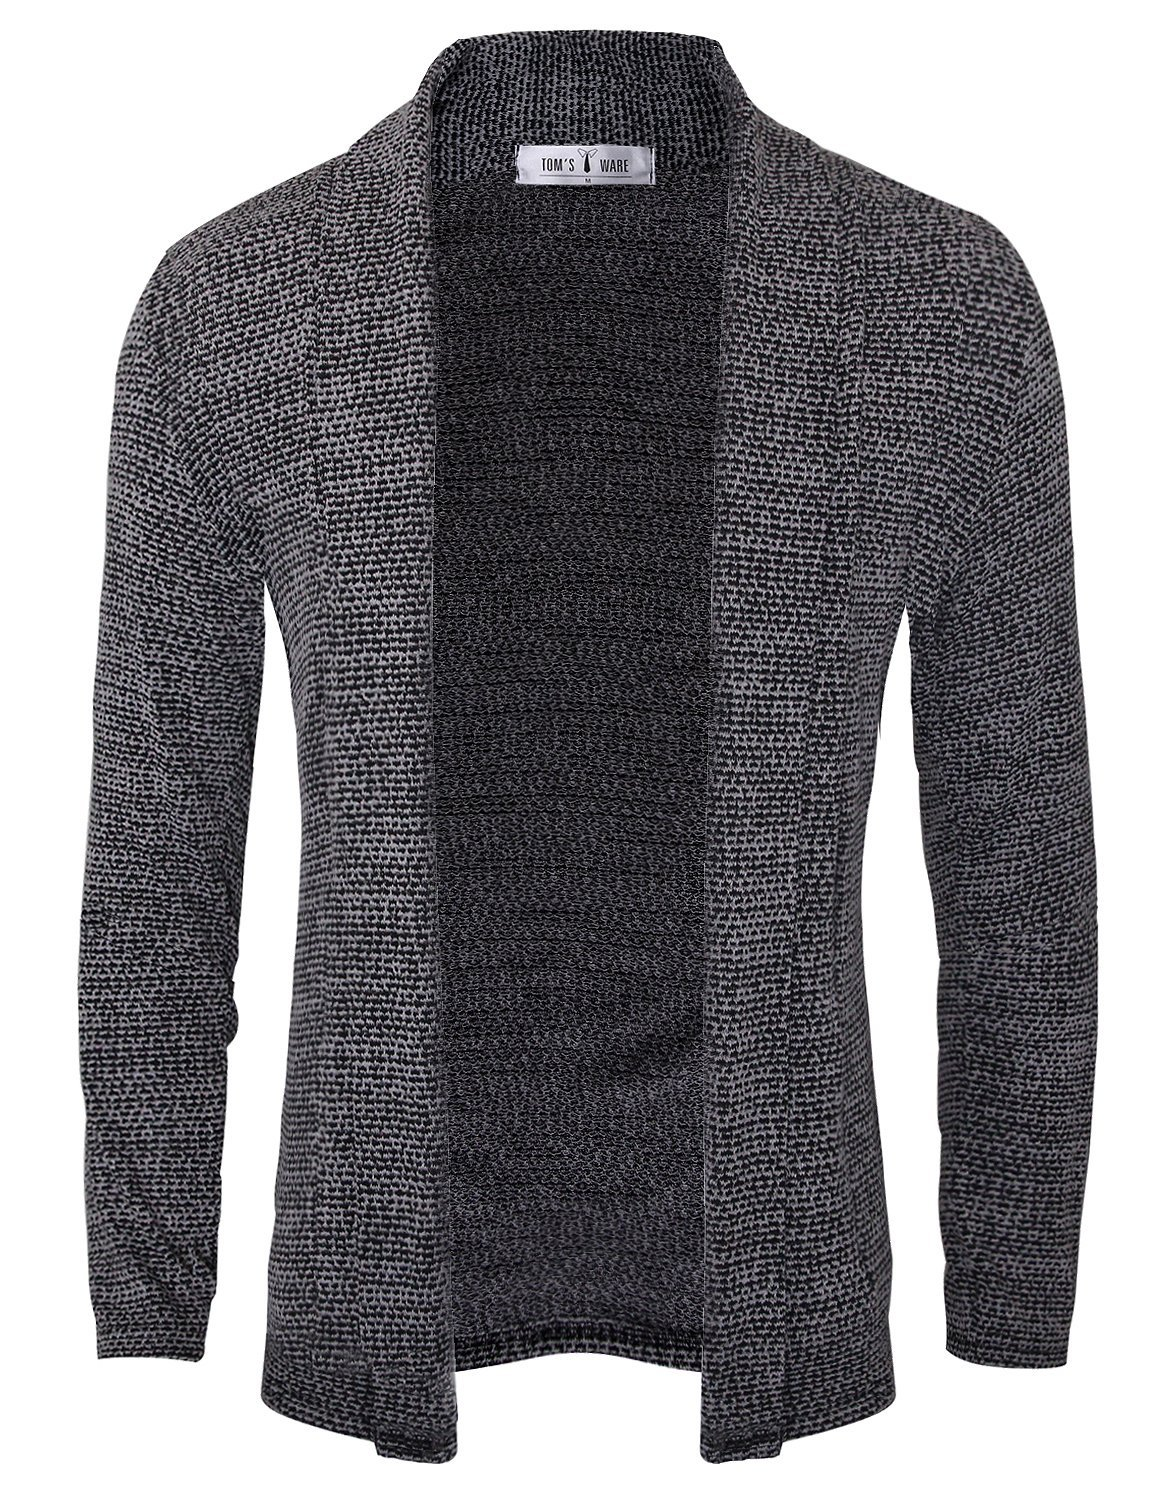 Tom's Ware Mens Classic Slim Fit Knit Open-Front Cardigan TWNR210G-1508-GRAY-US XS/S(Tag Size S)